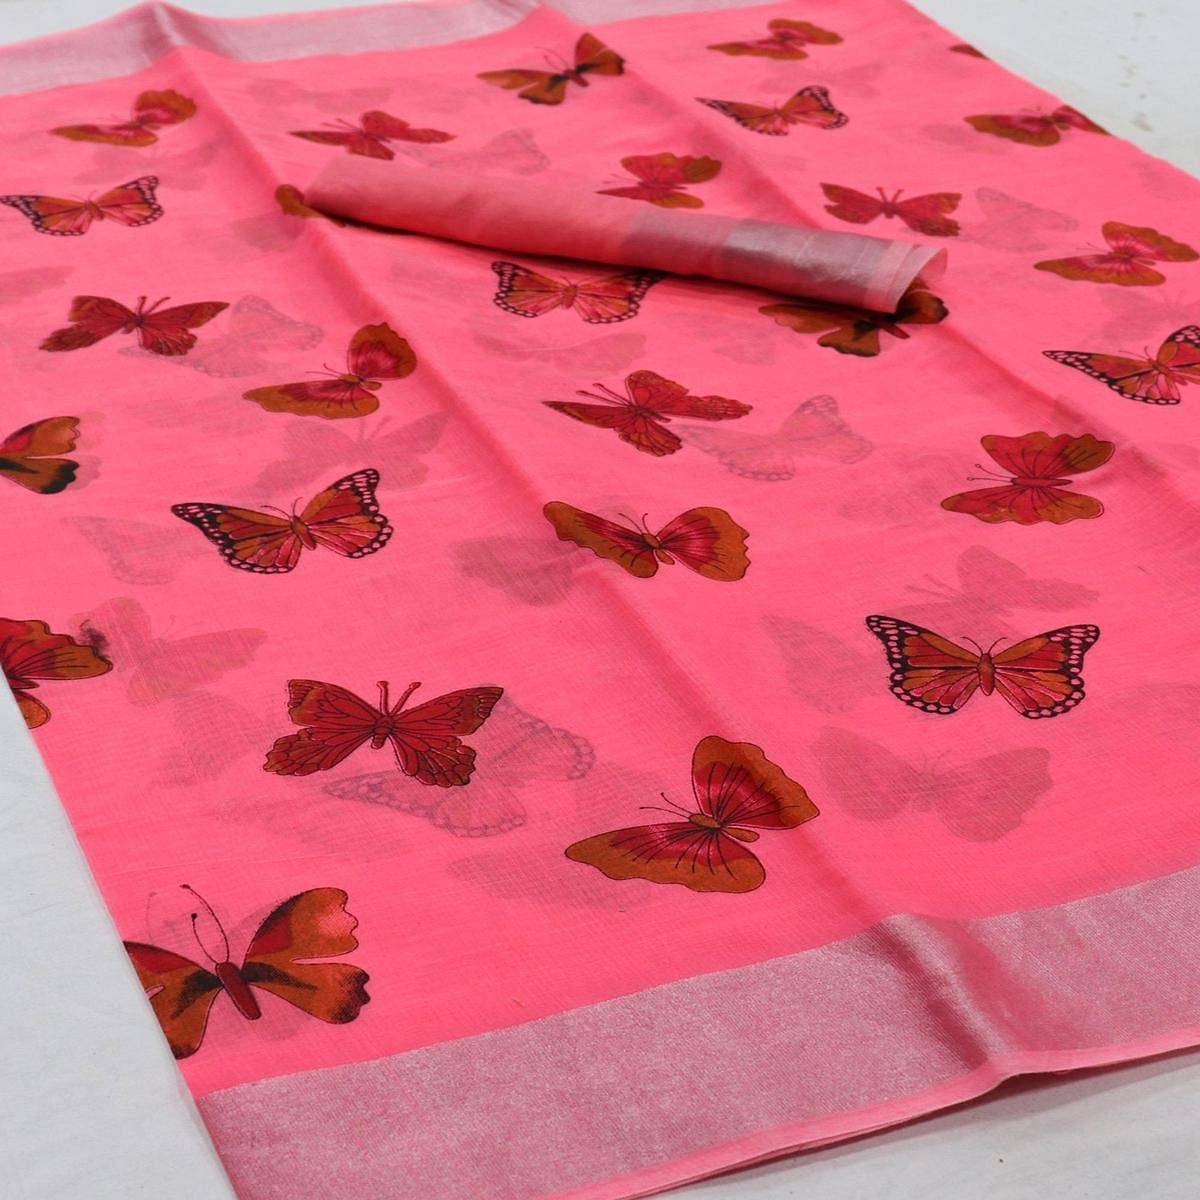 Flamboyant Pink Colored Casual Wear Butterfly Block Printed Cotton Linen Saree